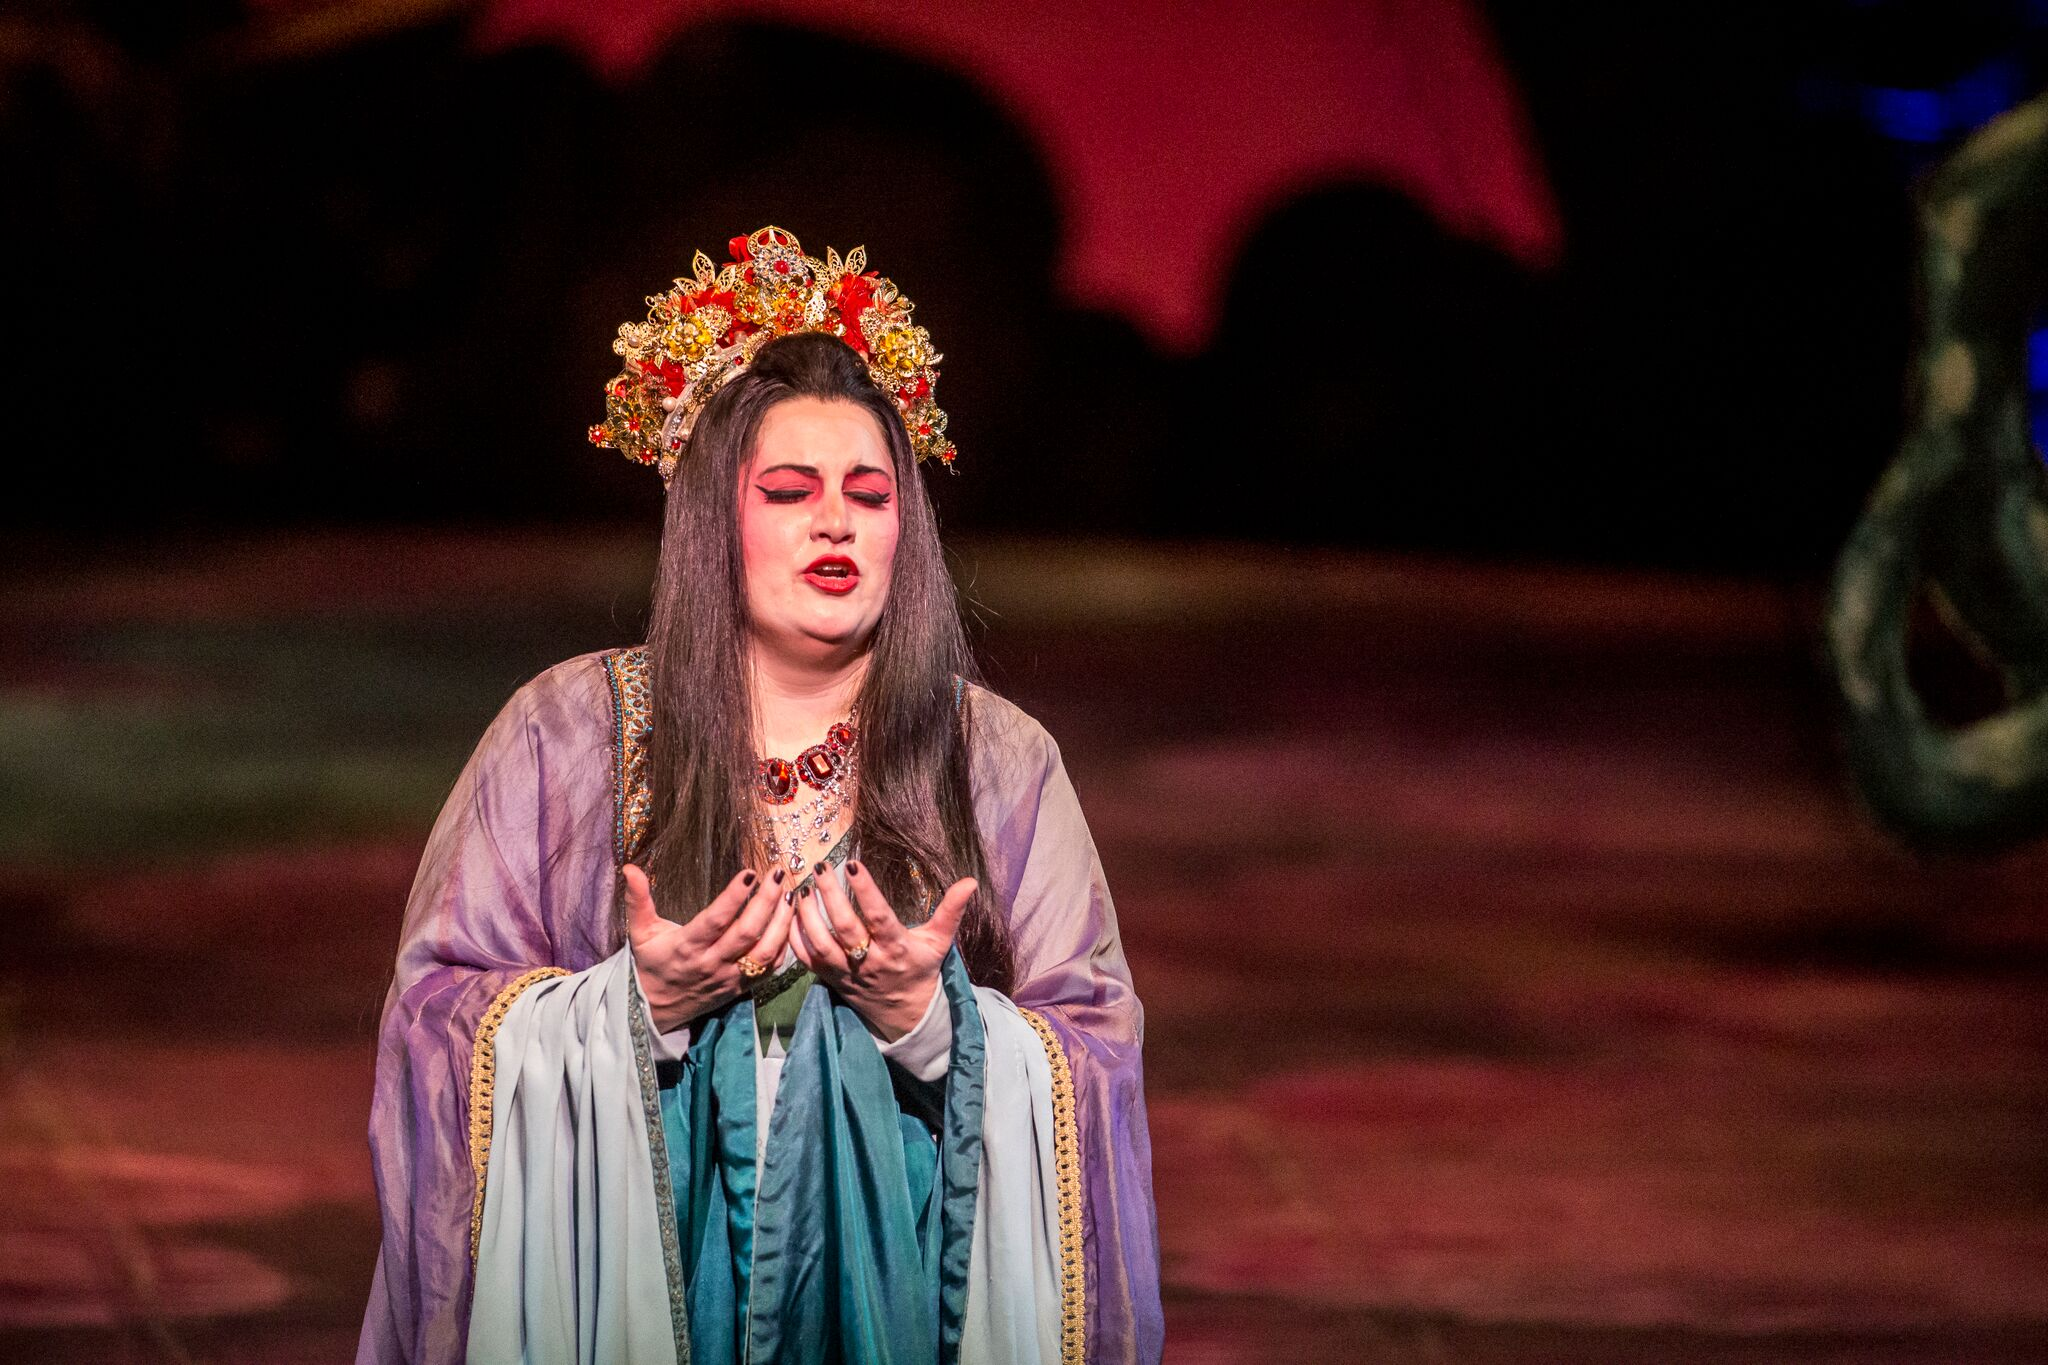 SB042518 TOturandot 301862_preview.jpg